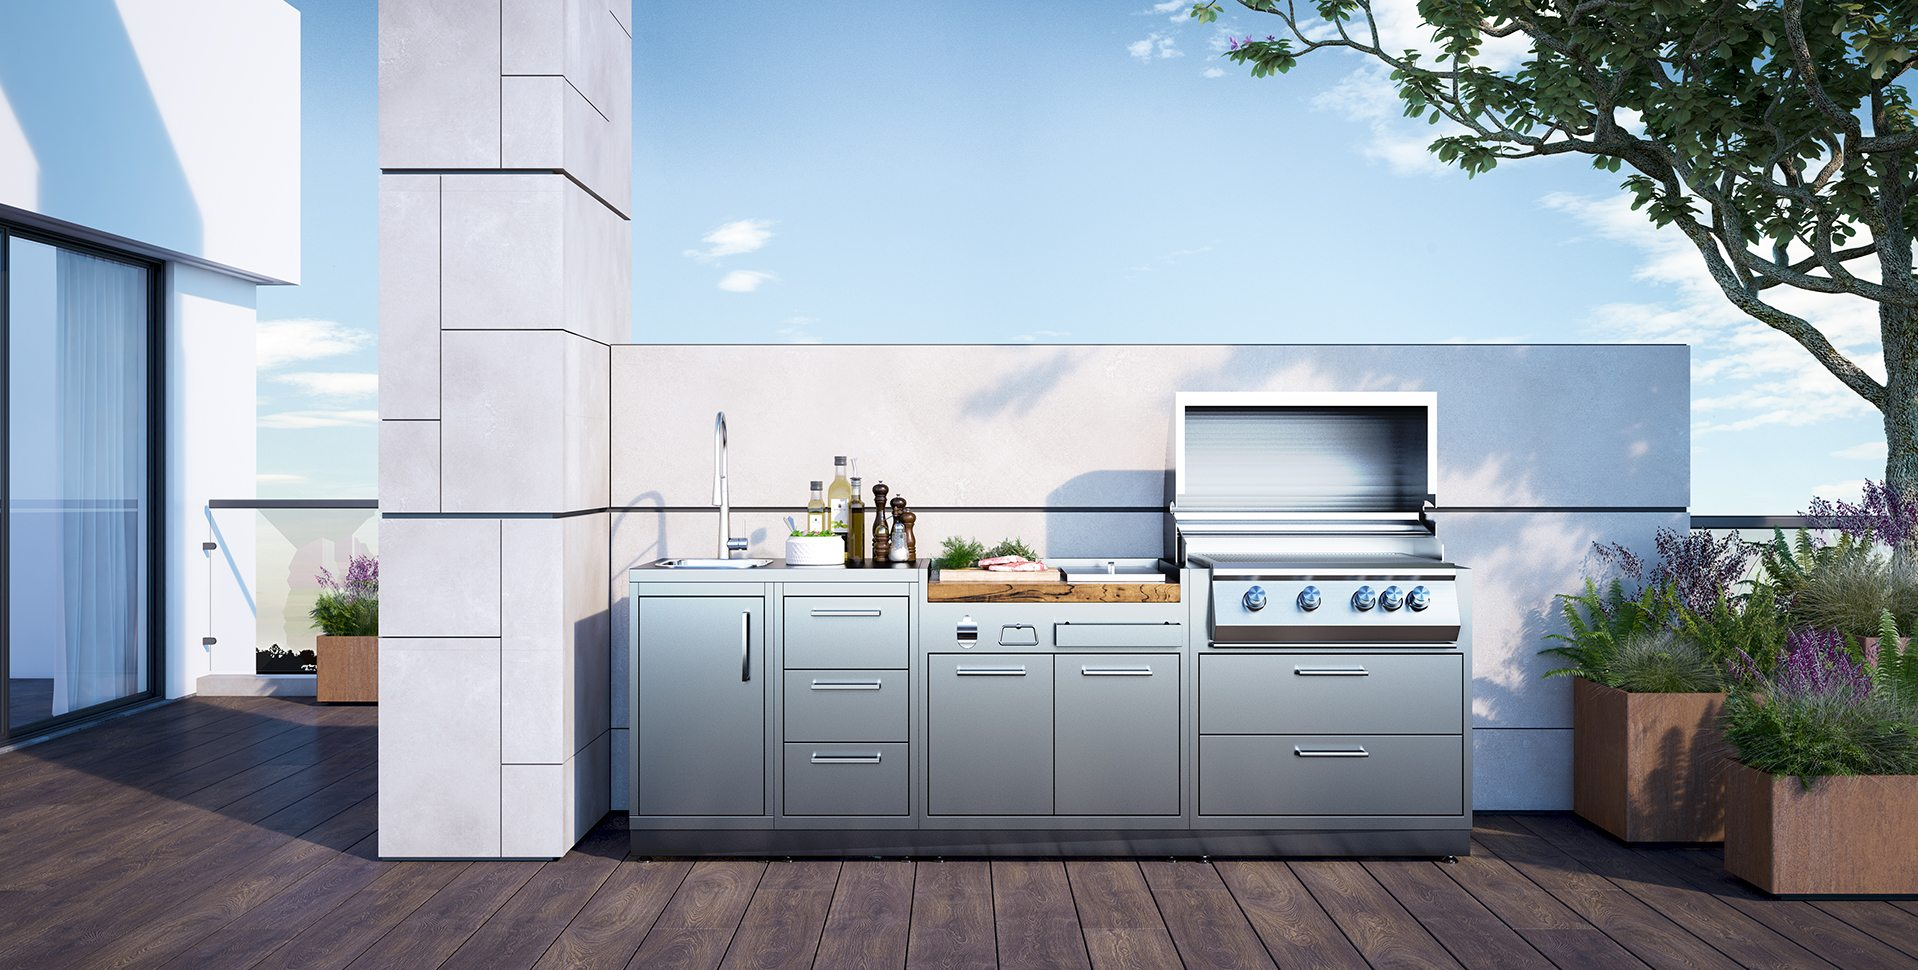 Product Visualization: Stainless steel Exterior Kitchen